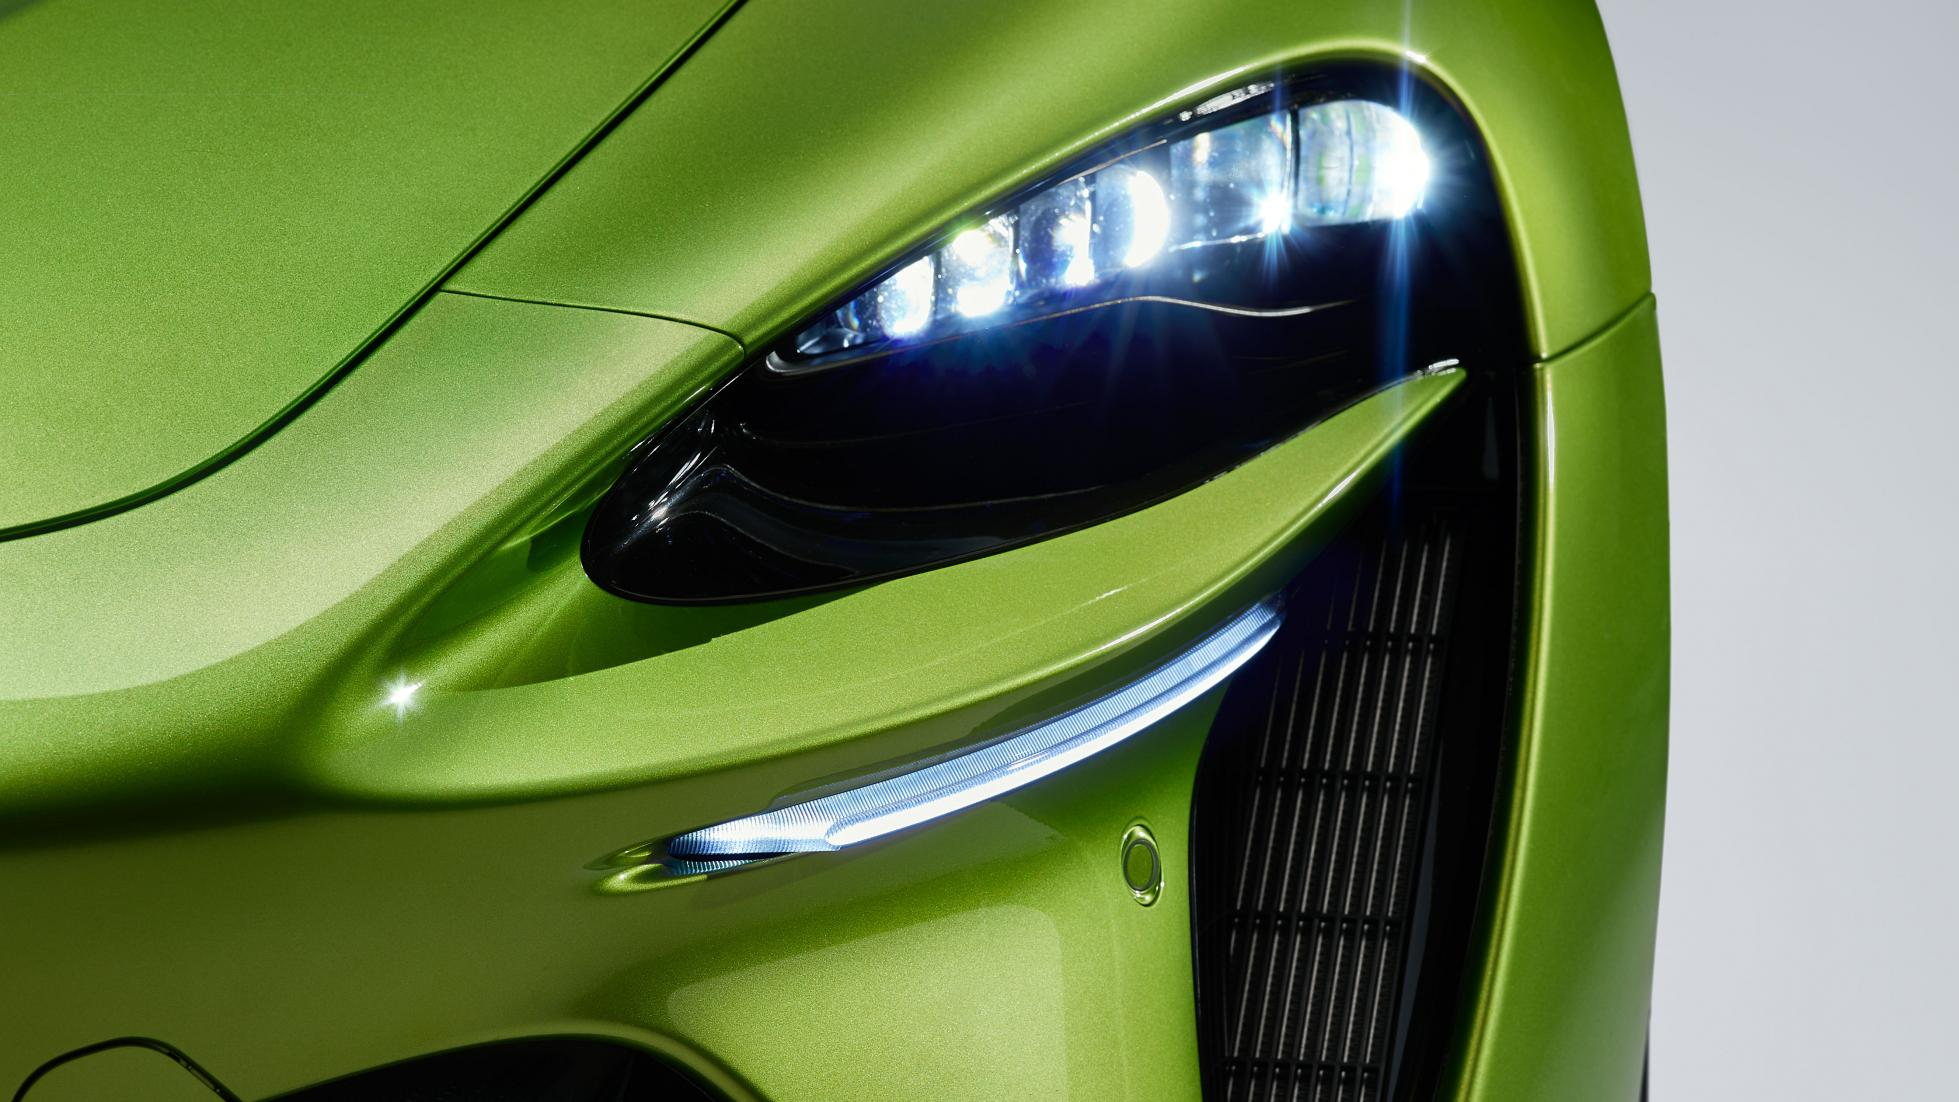 McLaren Artura in Flux Green headlight